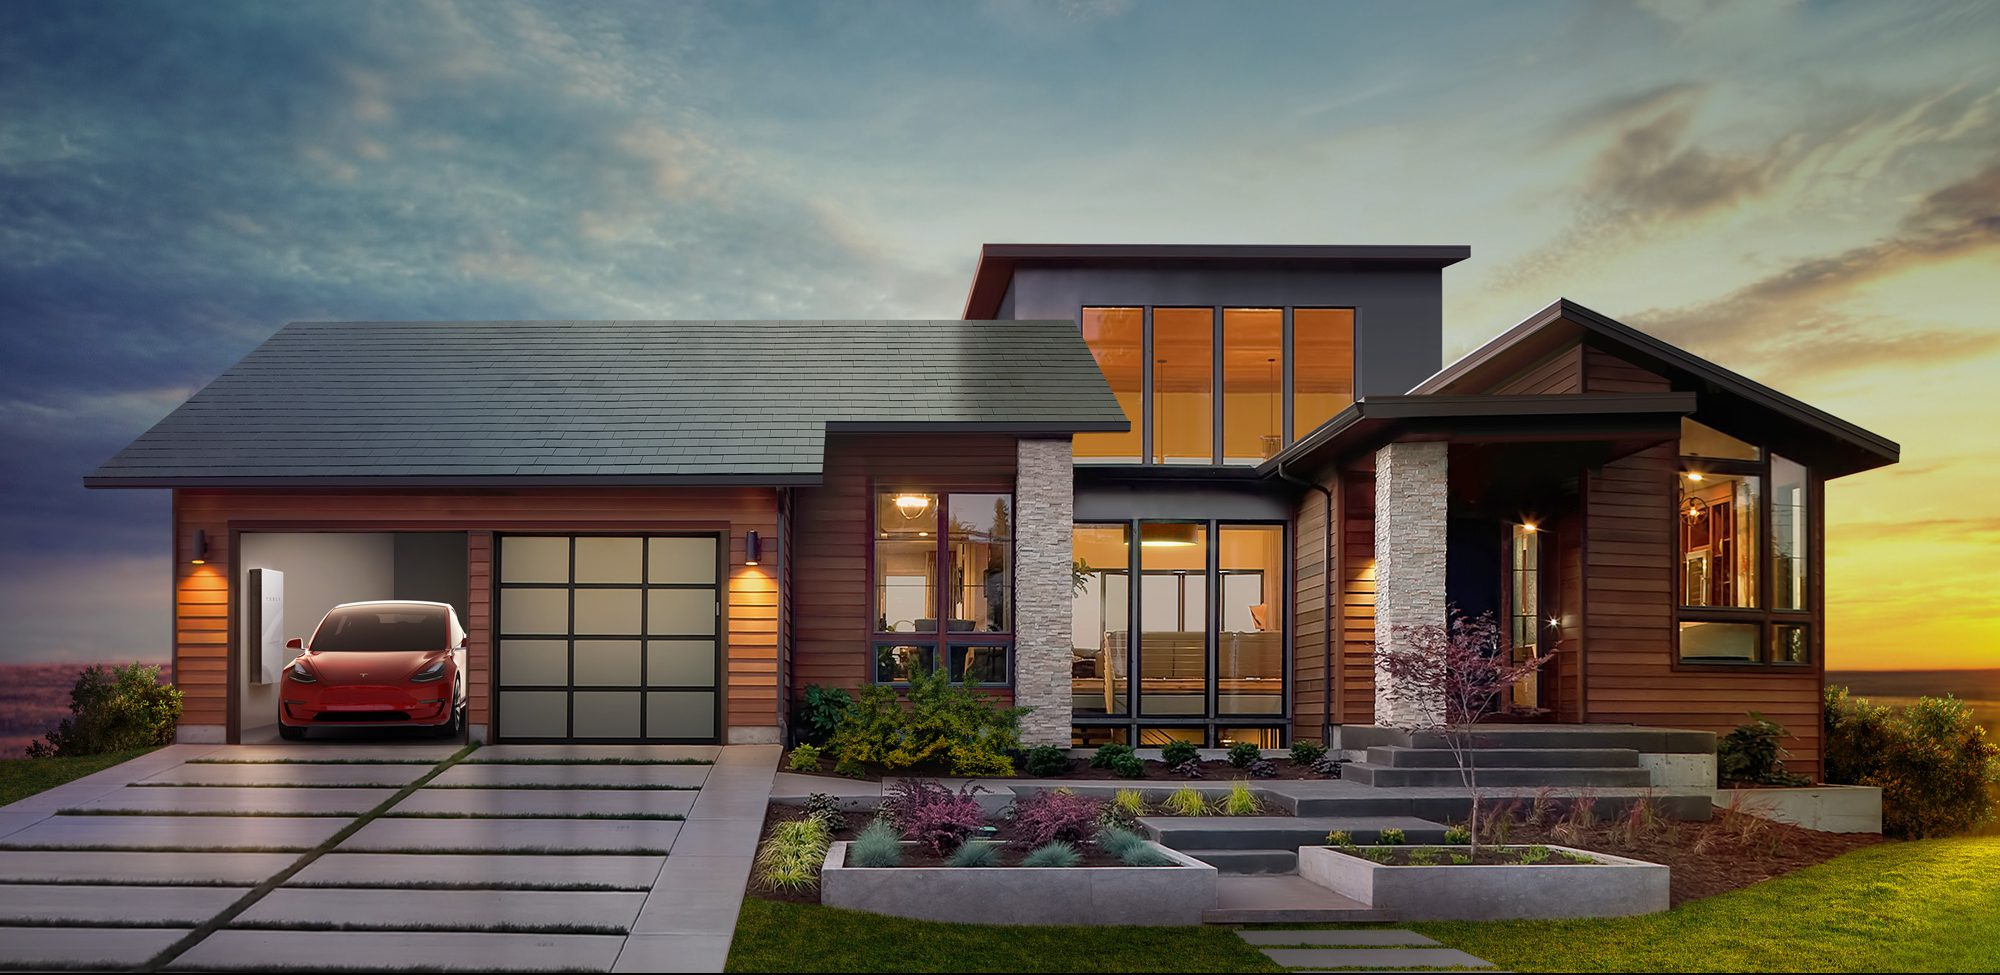 Lovely Solar Roof To Cost Less Than A Regular Roof Even Before Cost Less Lighting 04 Xrw Cost Less Lighting Inc Address houzz-03 Cost Less Lighting